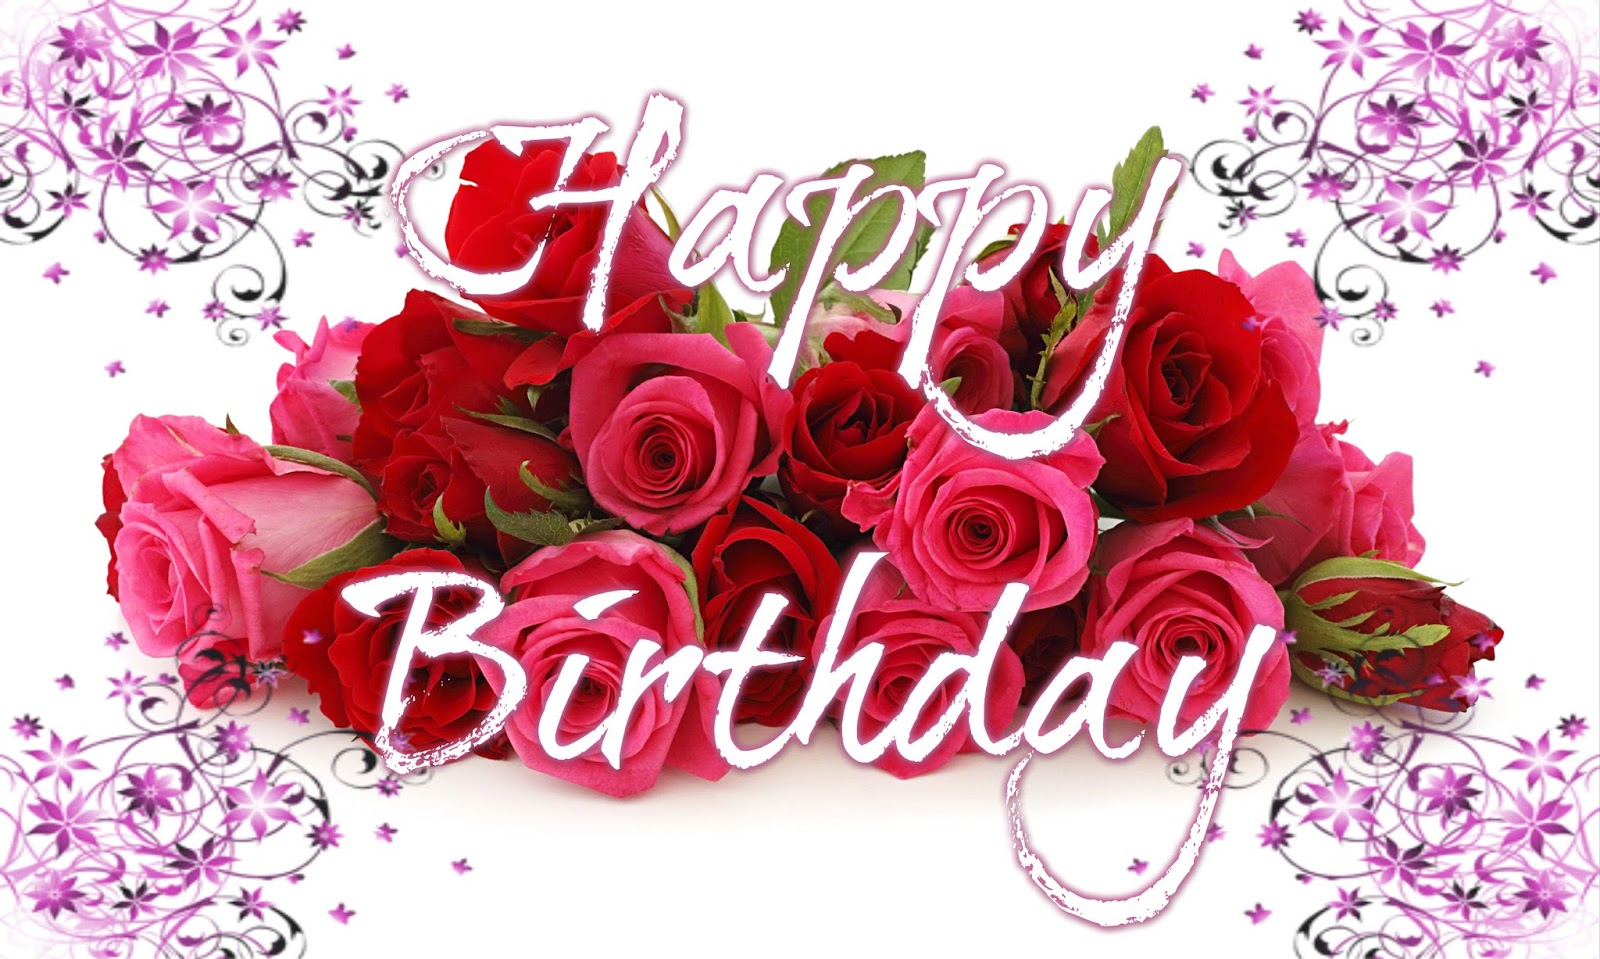 Happy birthday images hd photos pics with wishes happy birthday images hd photos pics wallpapers kristyandbryce Gallery